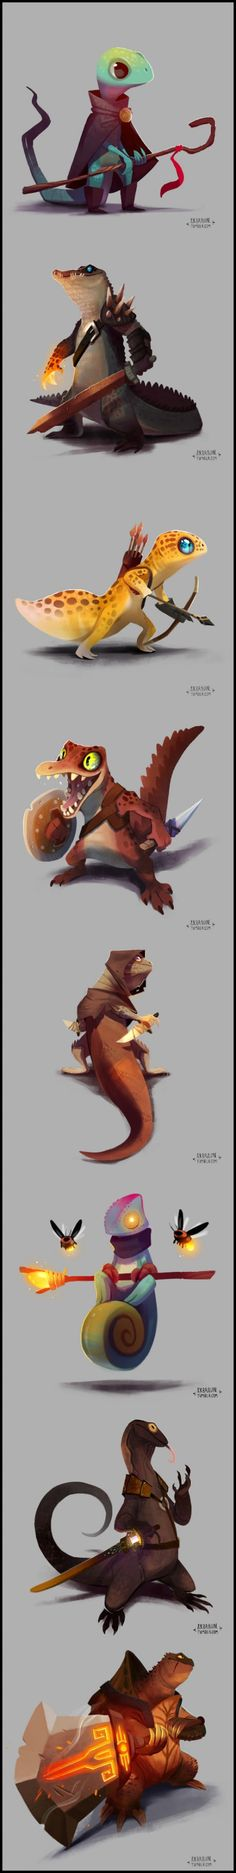 RPG Reptiles by Alex Braun (the snapping turtle is my favourite)